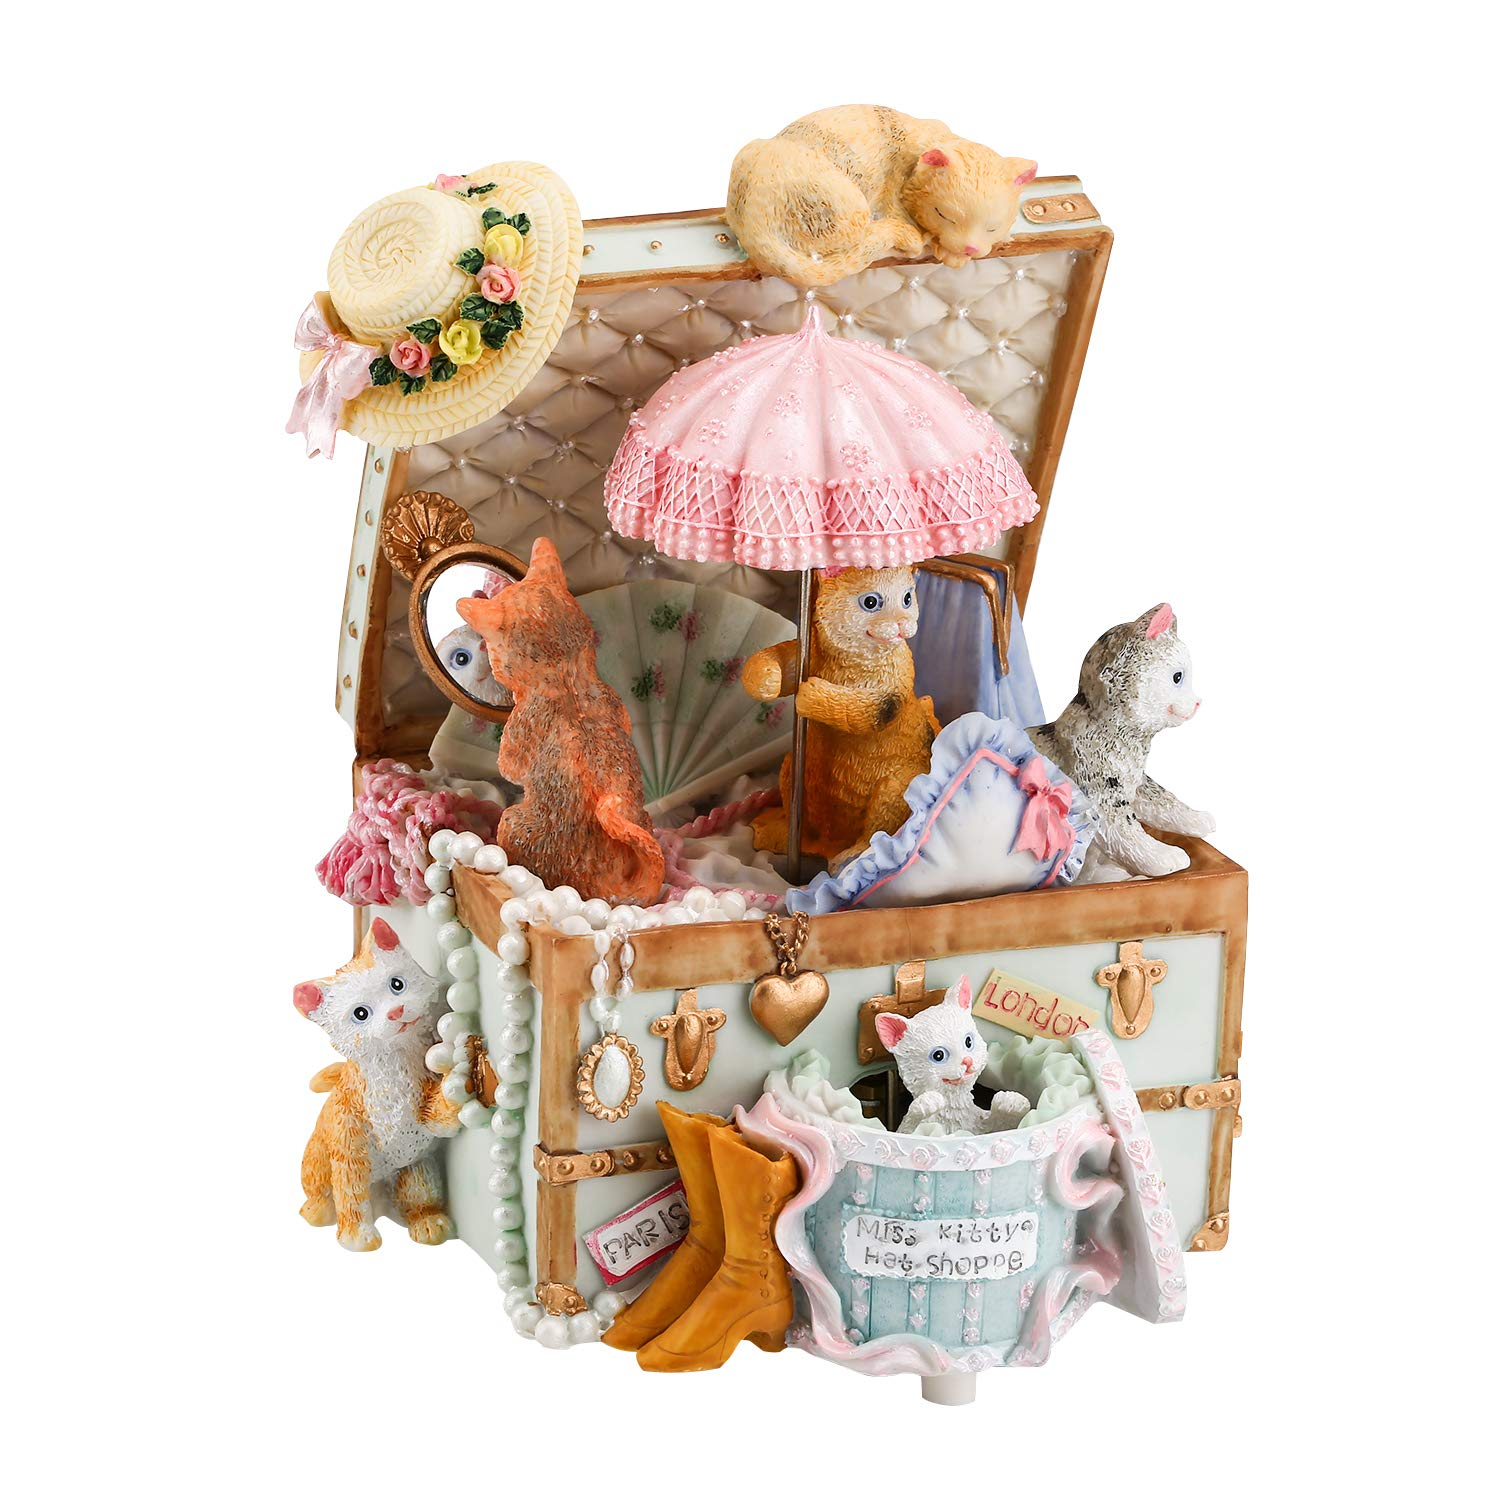 Mr.Winder Cat Music Box Cute Resin Kitty Musical Box Romantic Creative Birthday Gift for Girlfriend Children on Christmas/Birthday/Valentine's Day Castle in The Sky by Mr.Winder